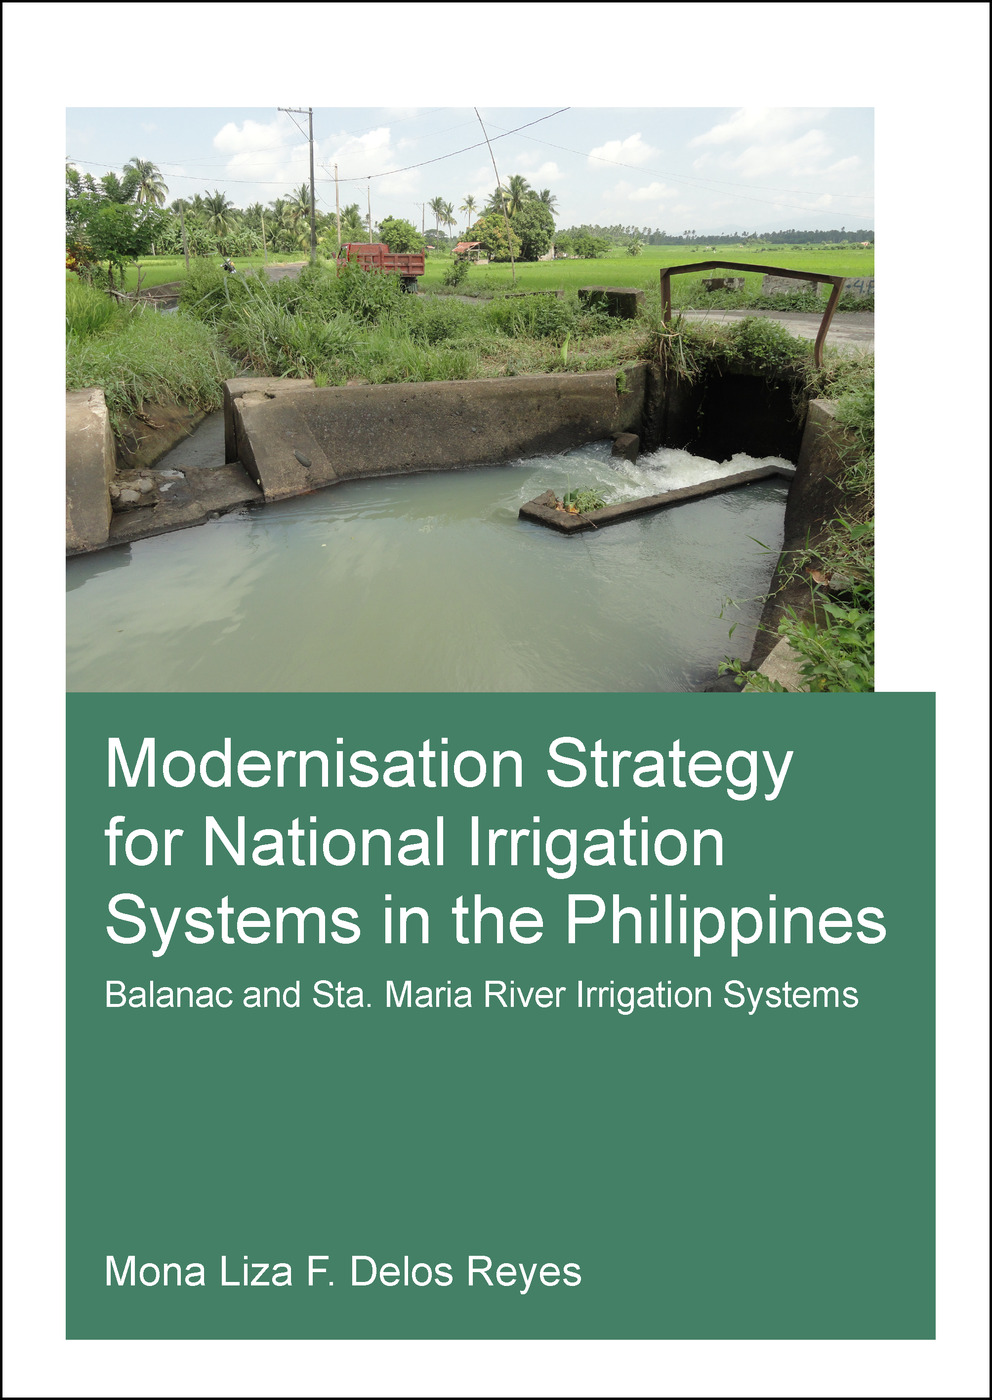 Modernisation Strategy for National Irrigation Systems in the Philippines: Balanac and Sta. Maria River Irrigation Systems book cover